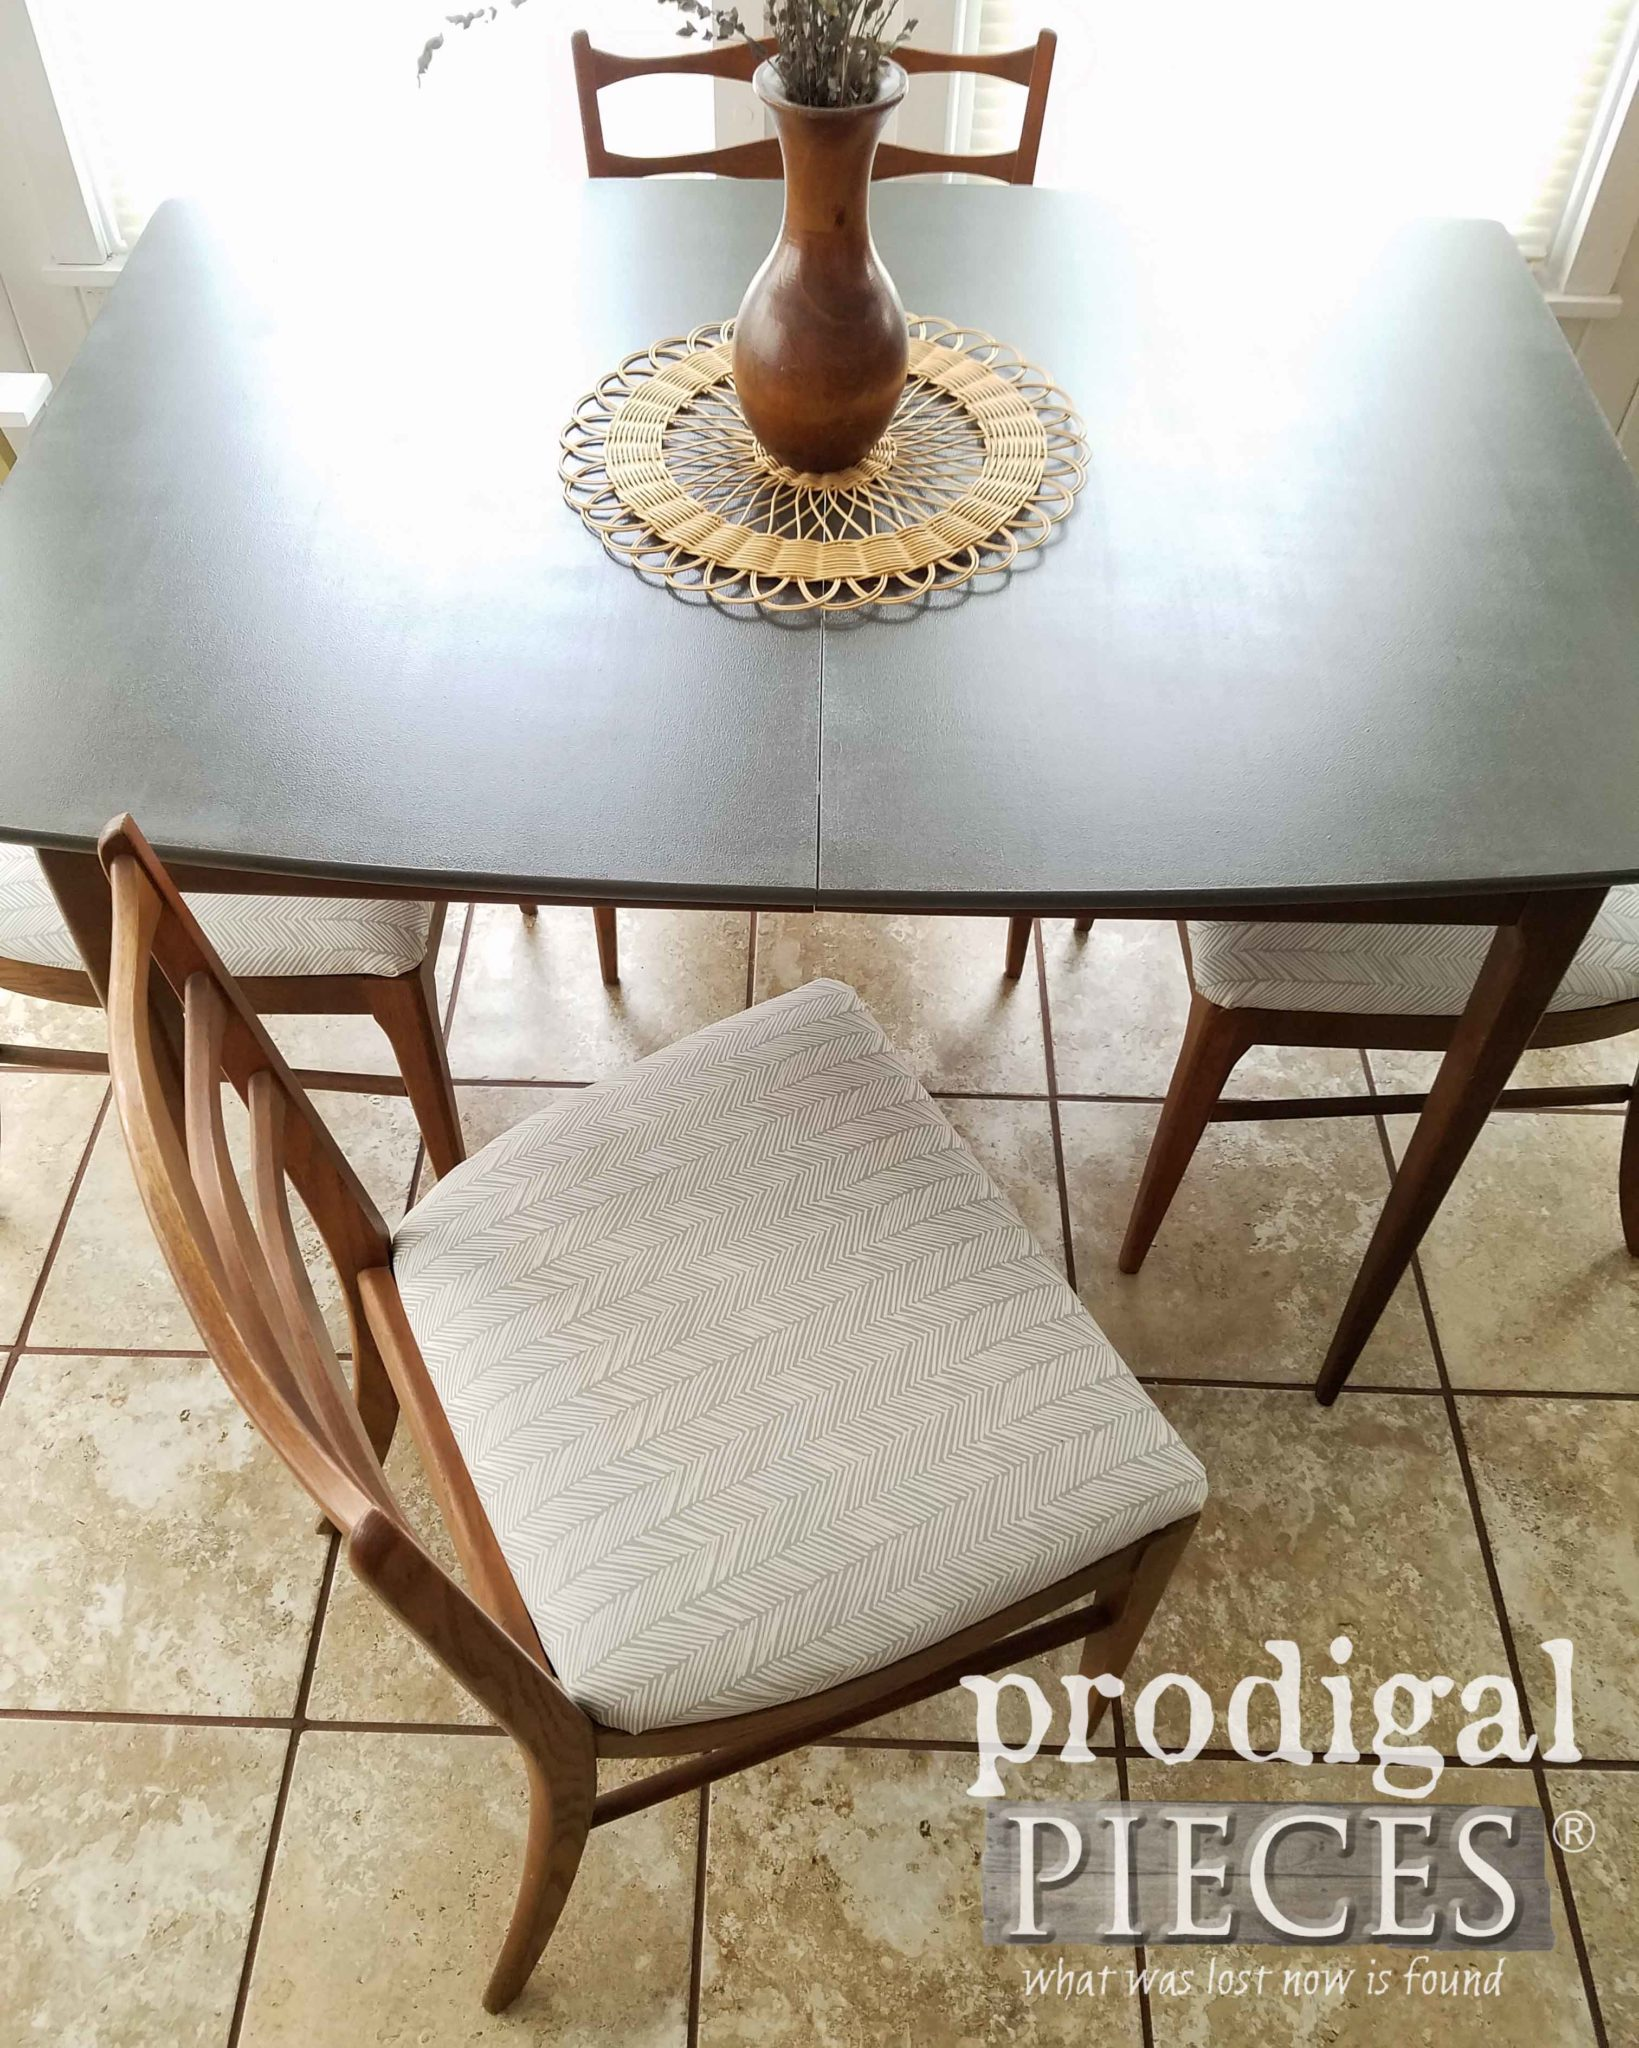 Mid Century Modern Dining Chair with Updated Modern Chic Fabric | How to Paint Laminate Furniture by Larissa of Prodigal Pieces | prodigalpieces.com